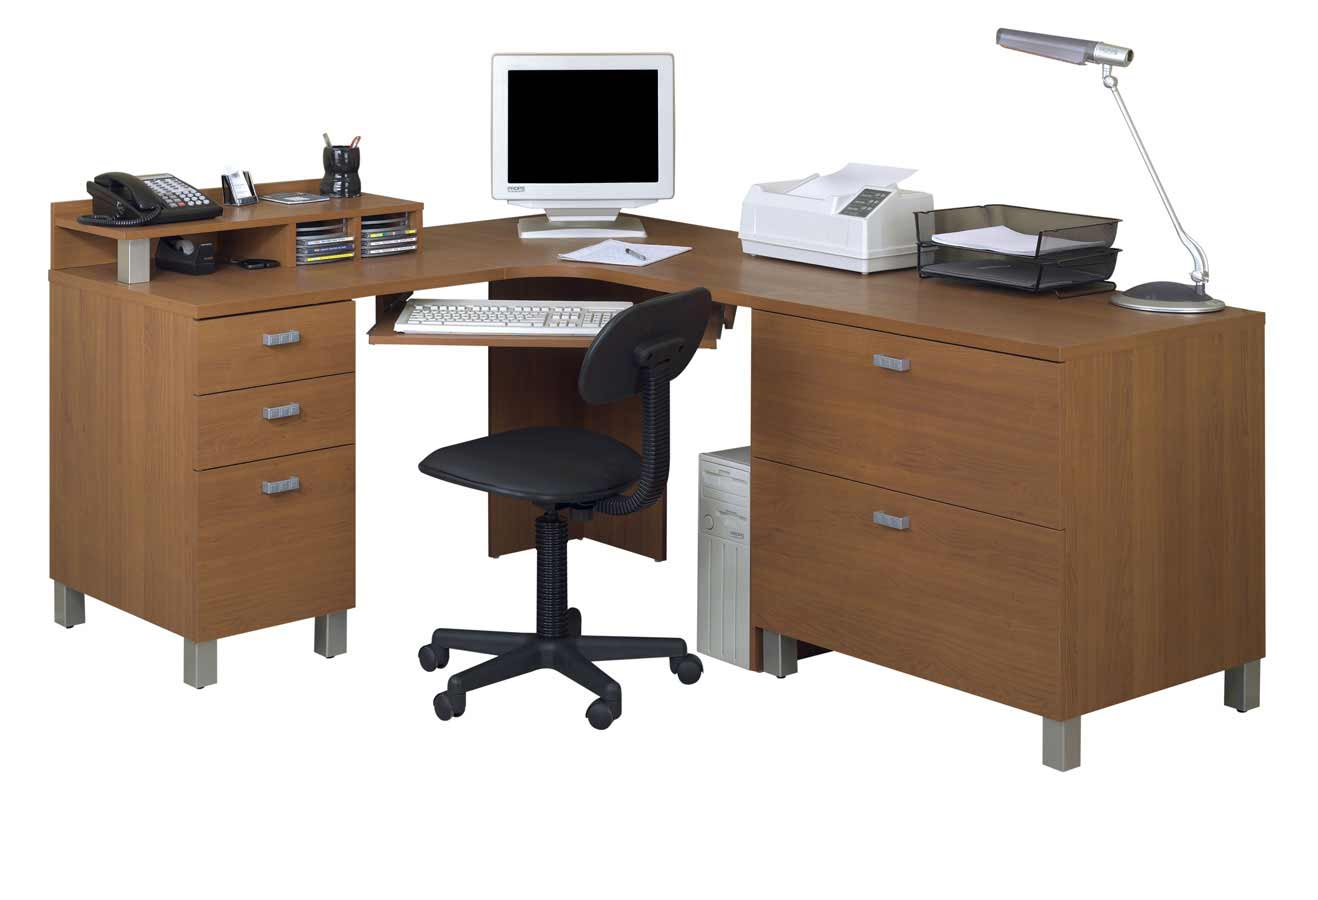 Computer desk office furniture office furniture - Corner office desk ...